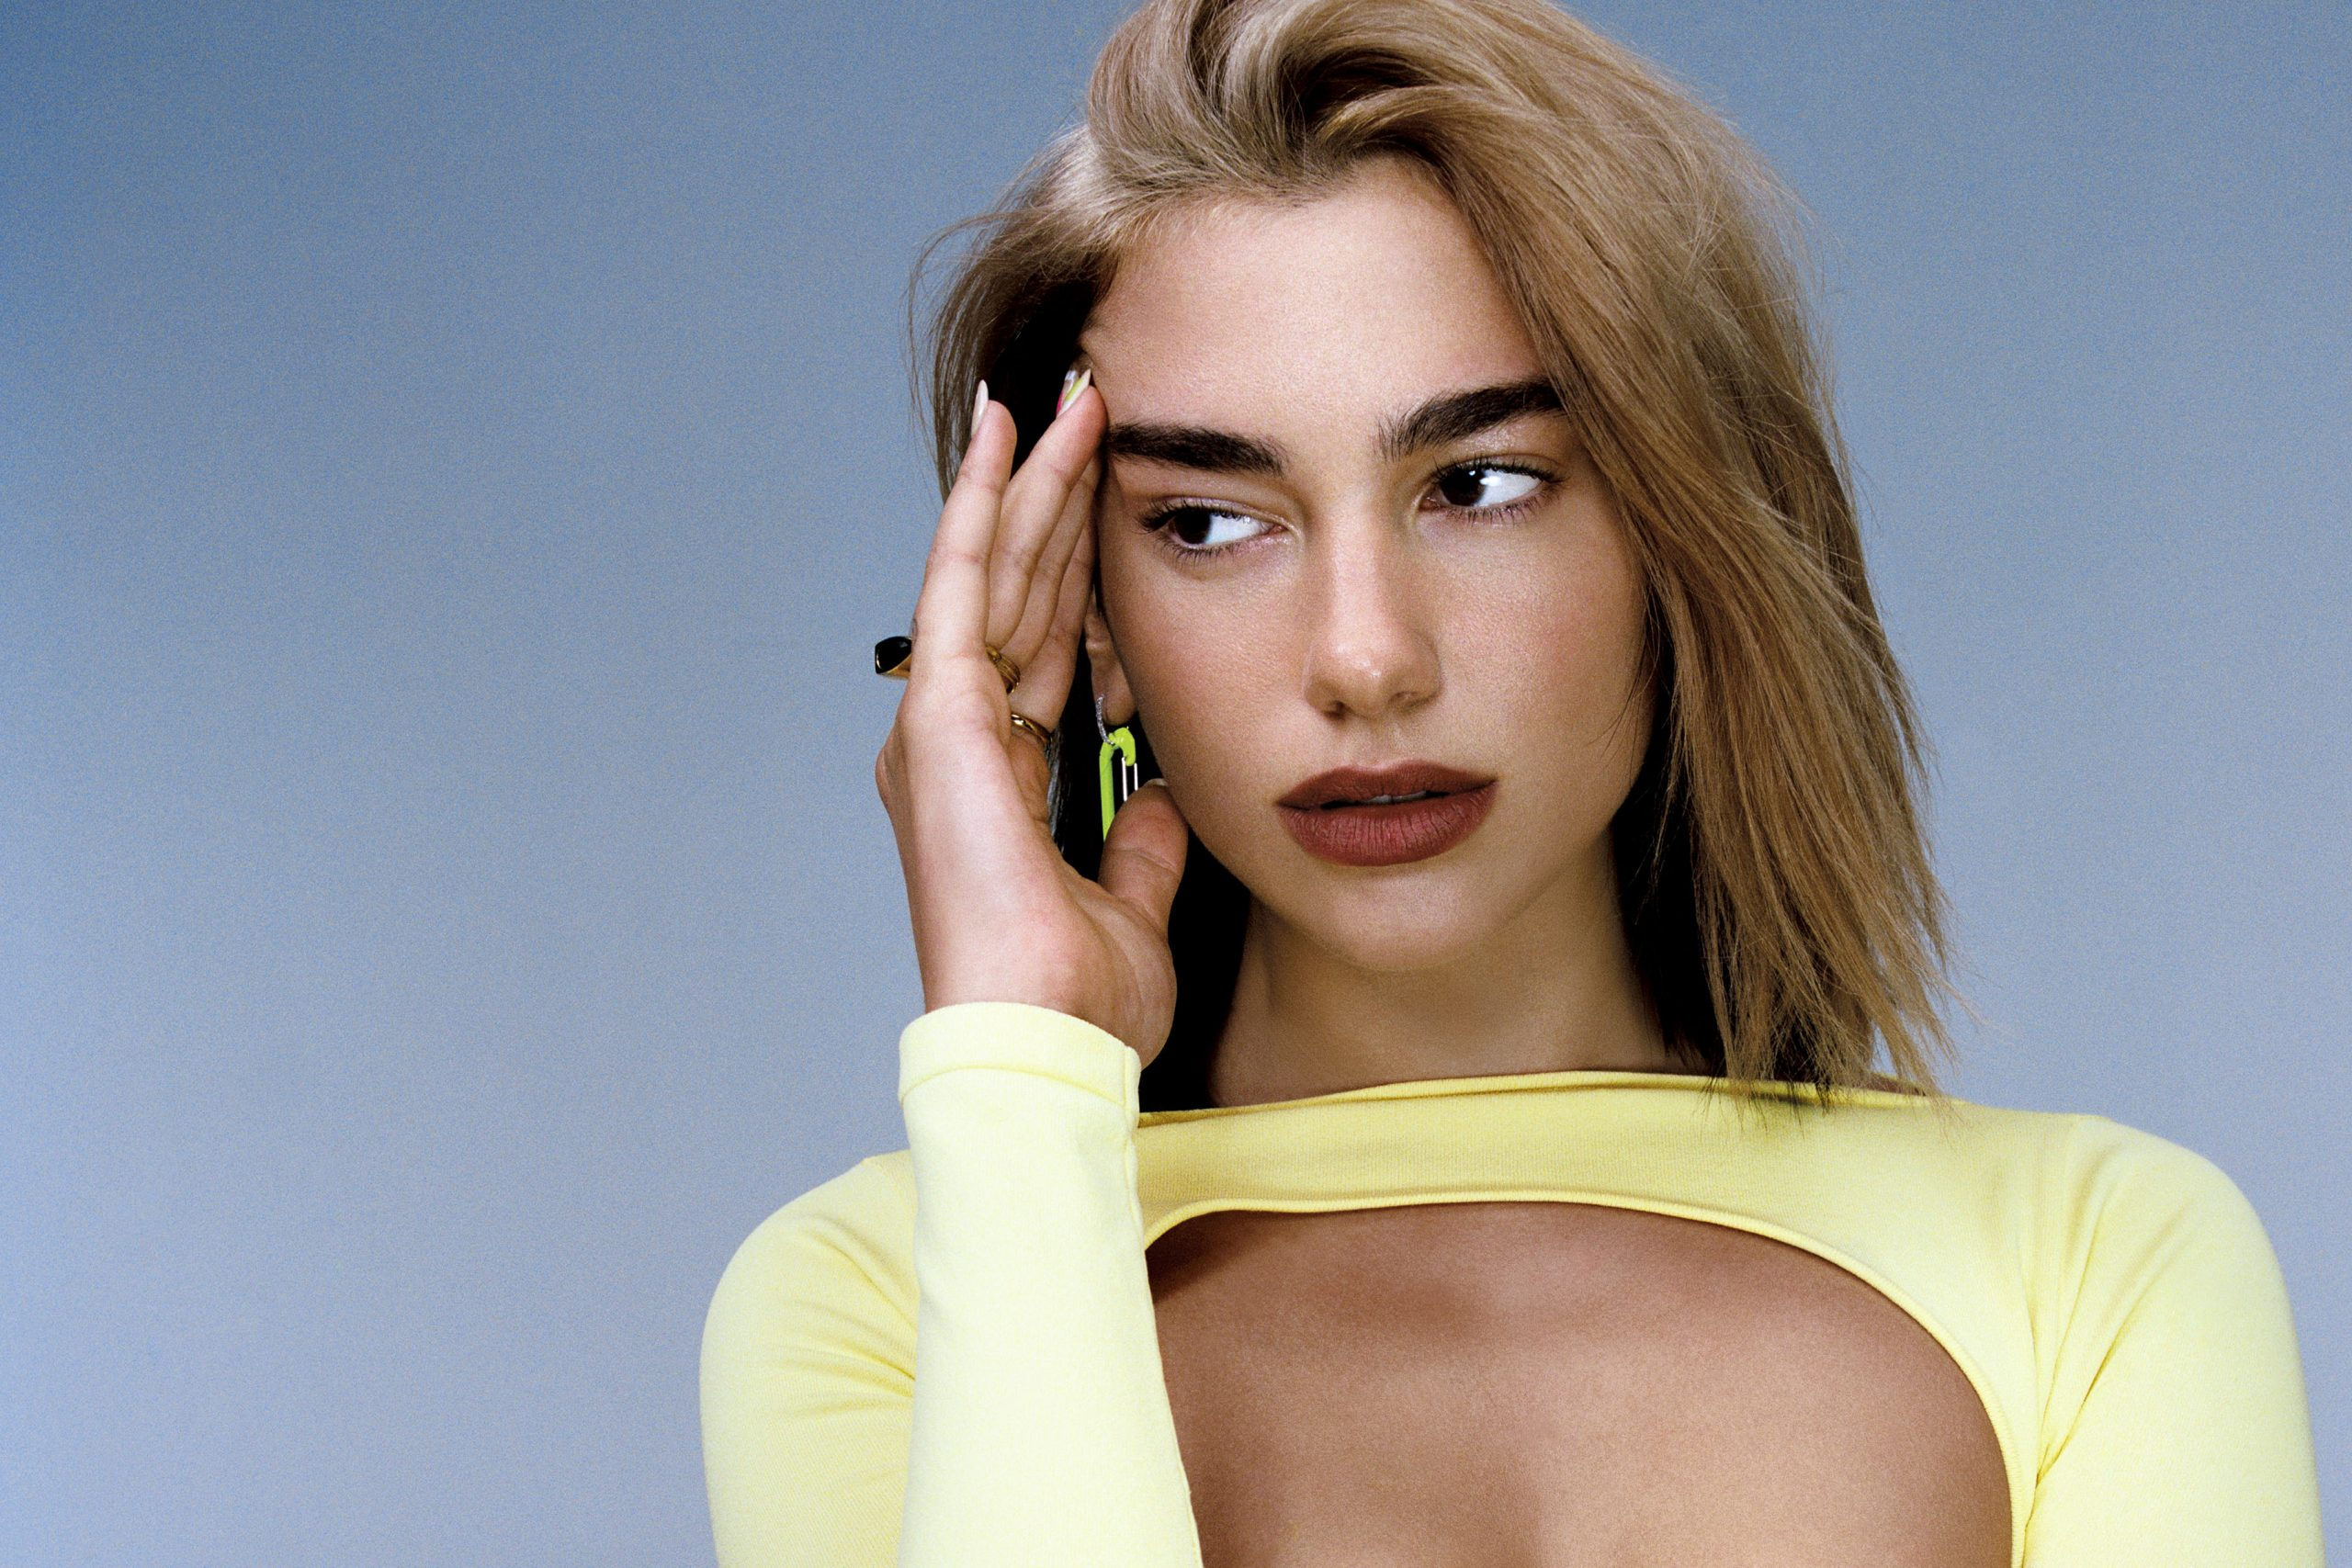 Dua Lipa Future Nostalgia press photos copy